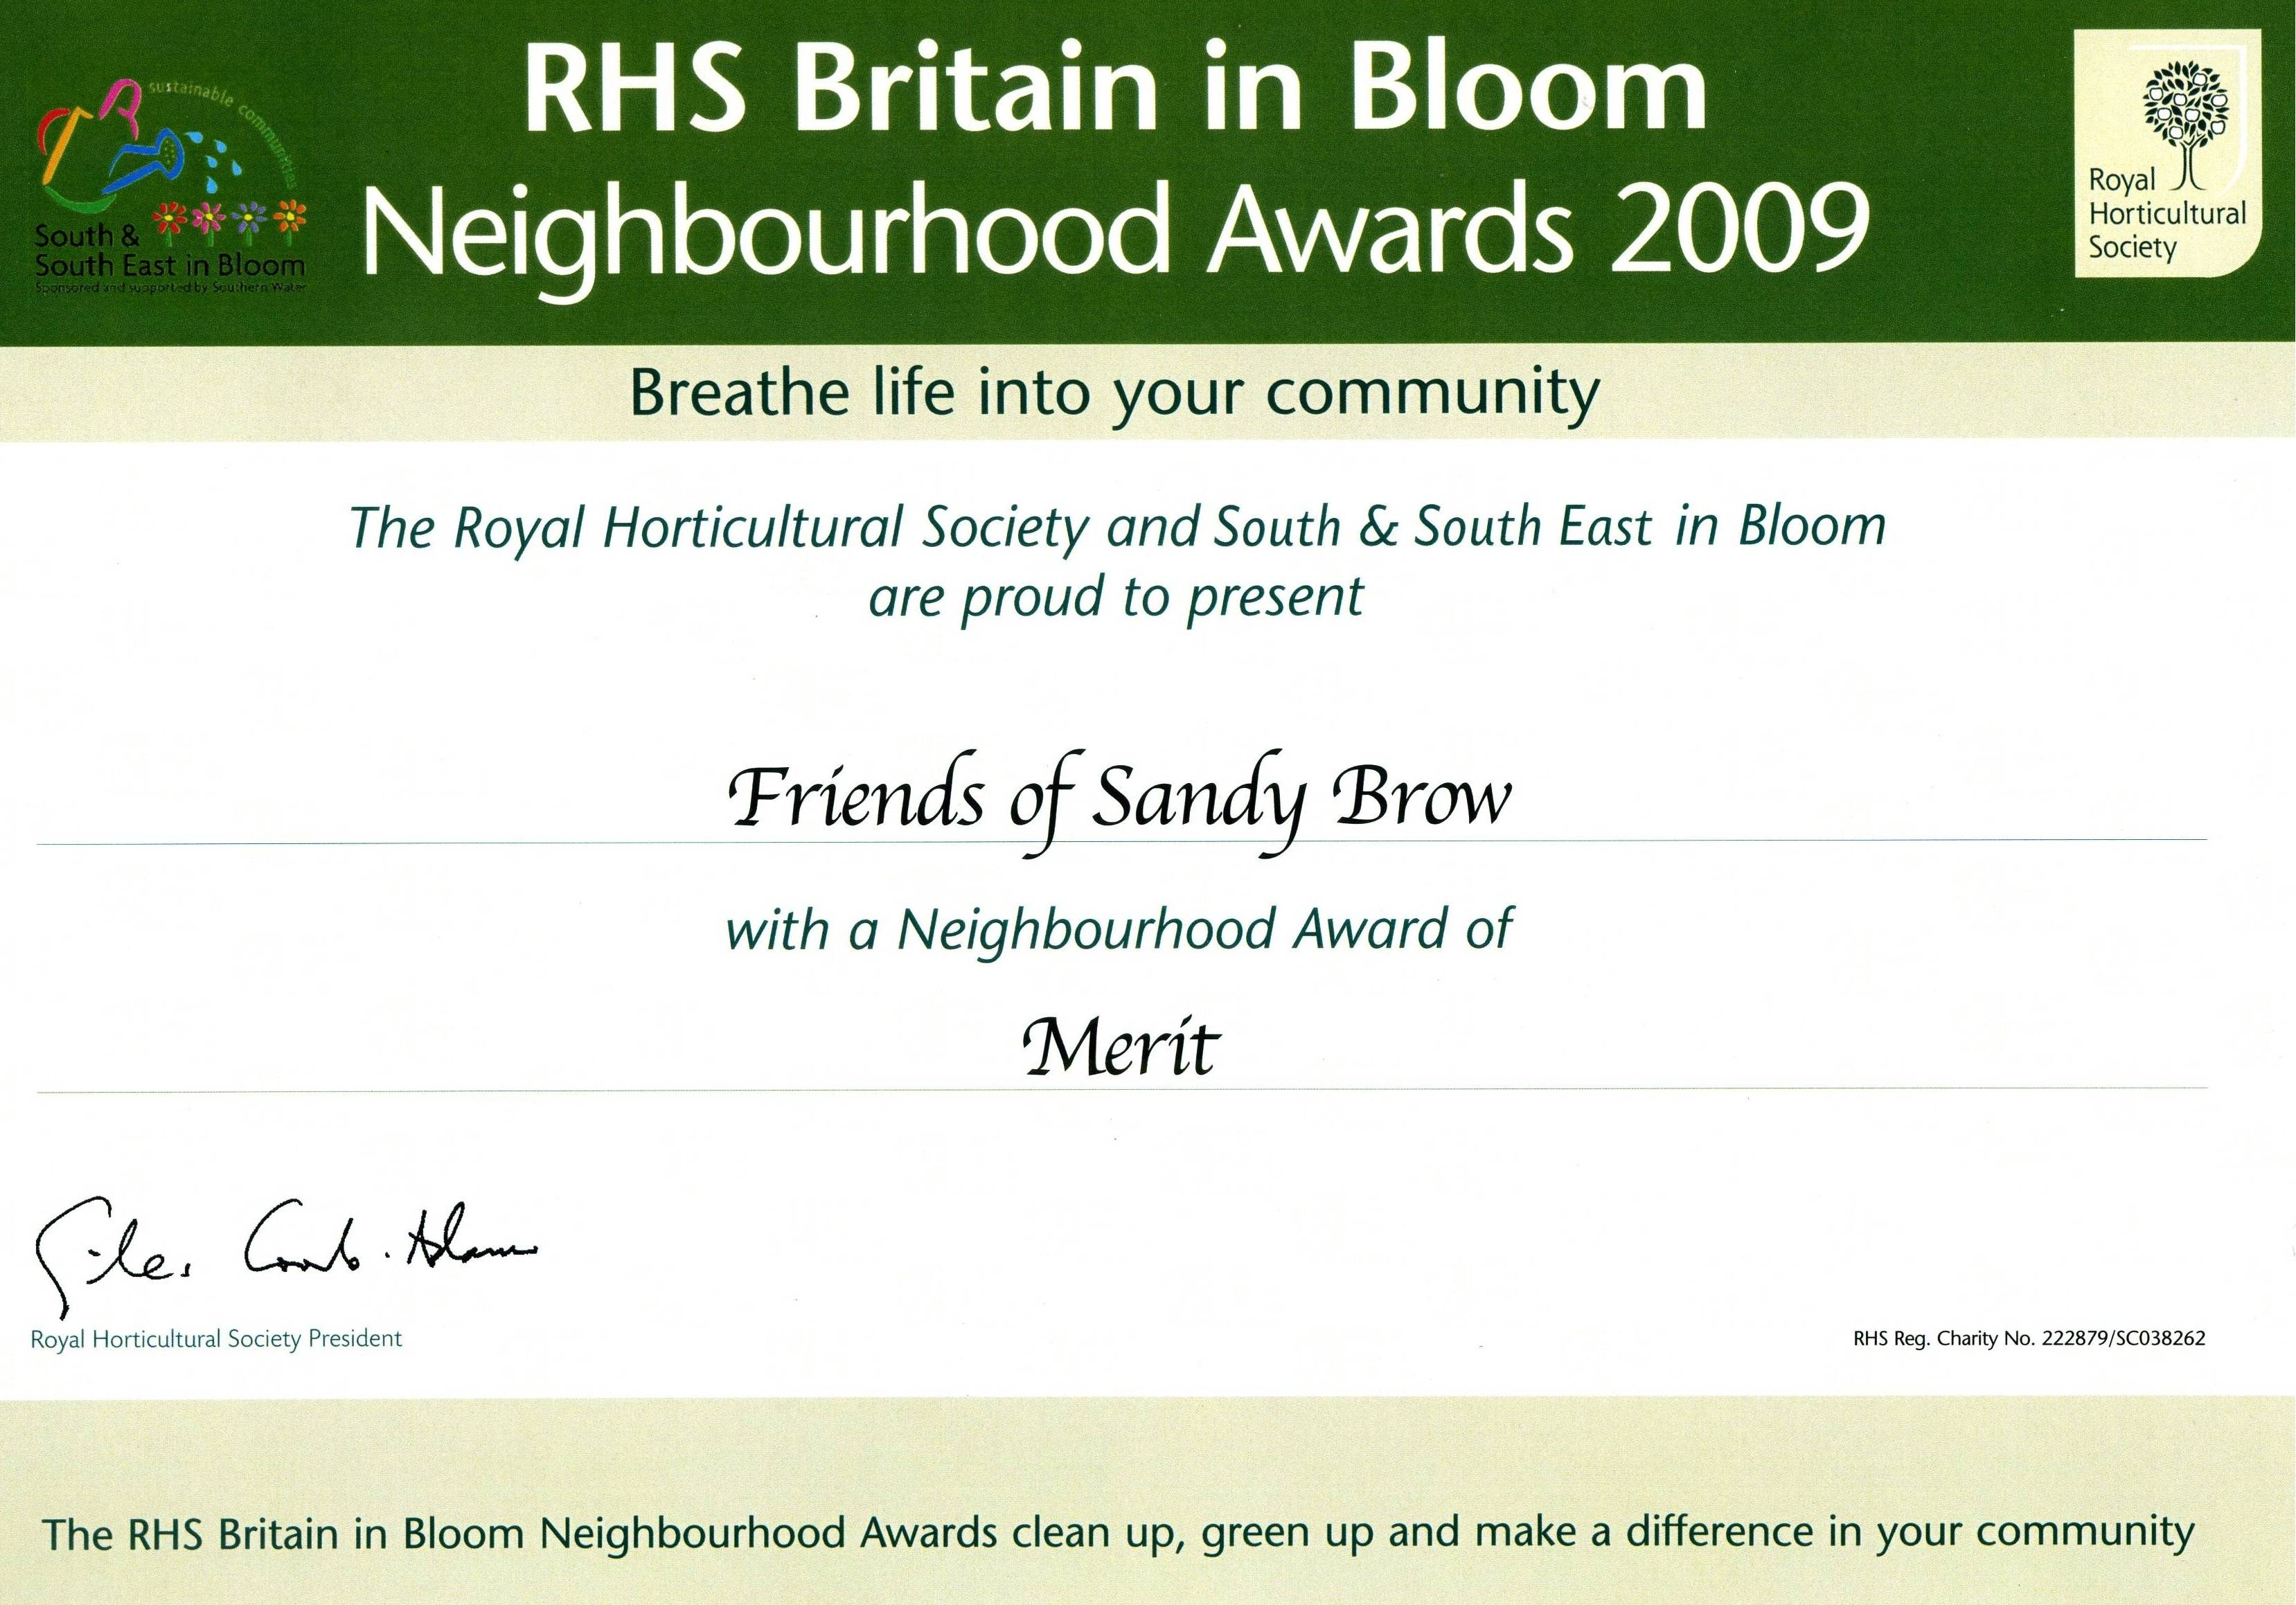 friends-of-sandy-brow-merit-cert-2009